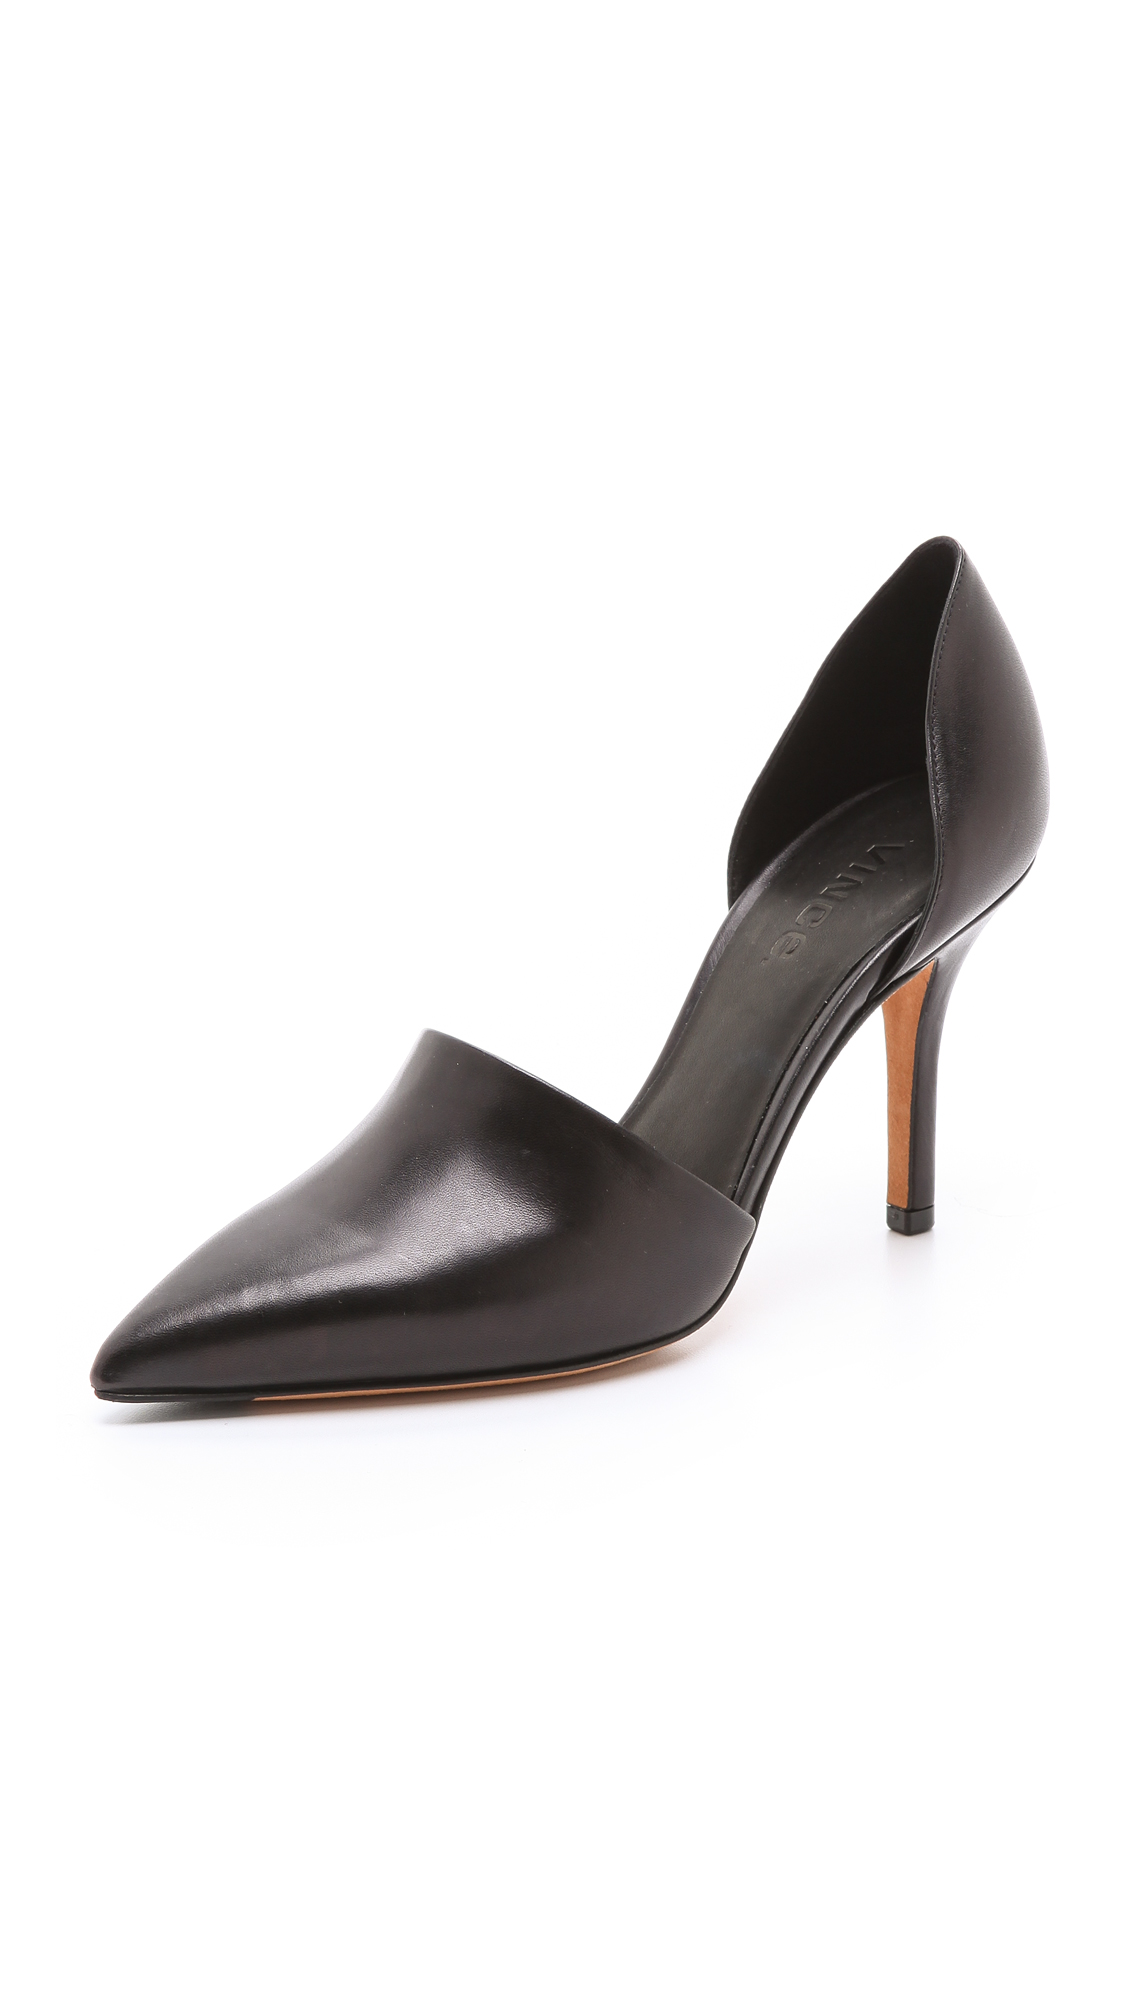 Vince Claire Calf Hair & Leather D'orsay Pumps In Black/black